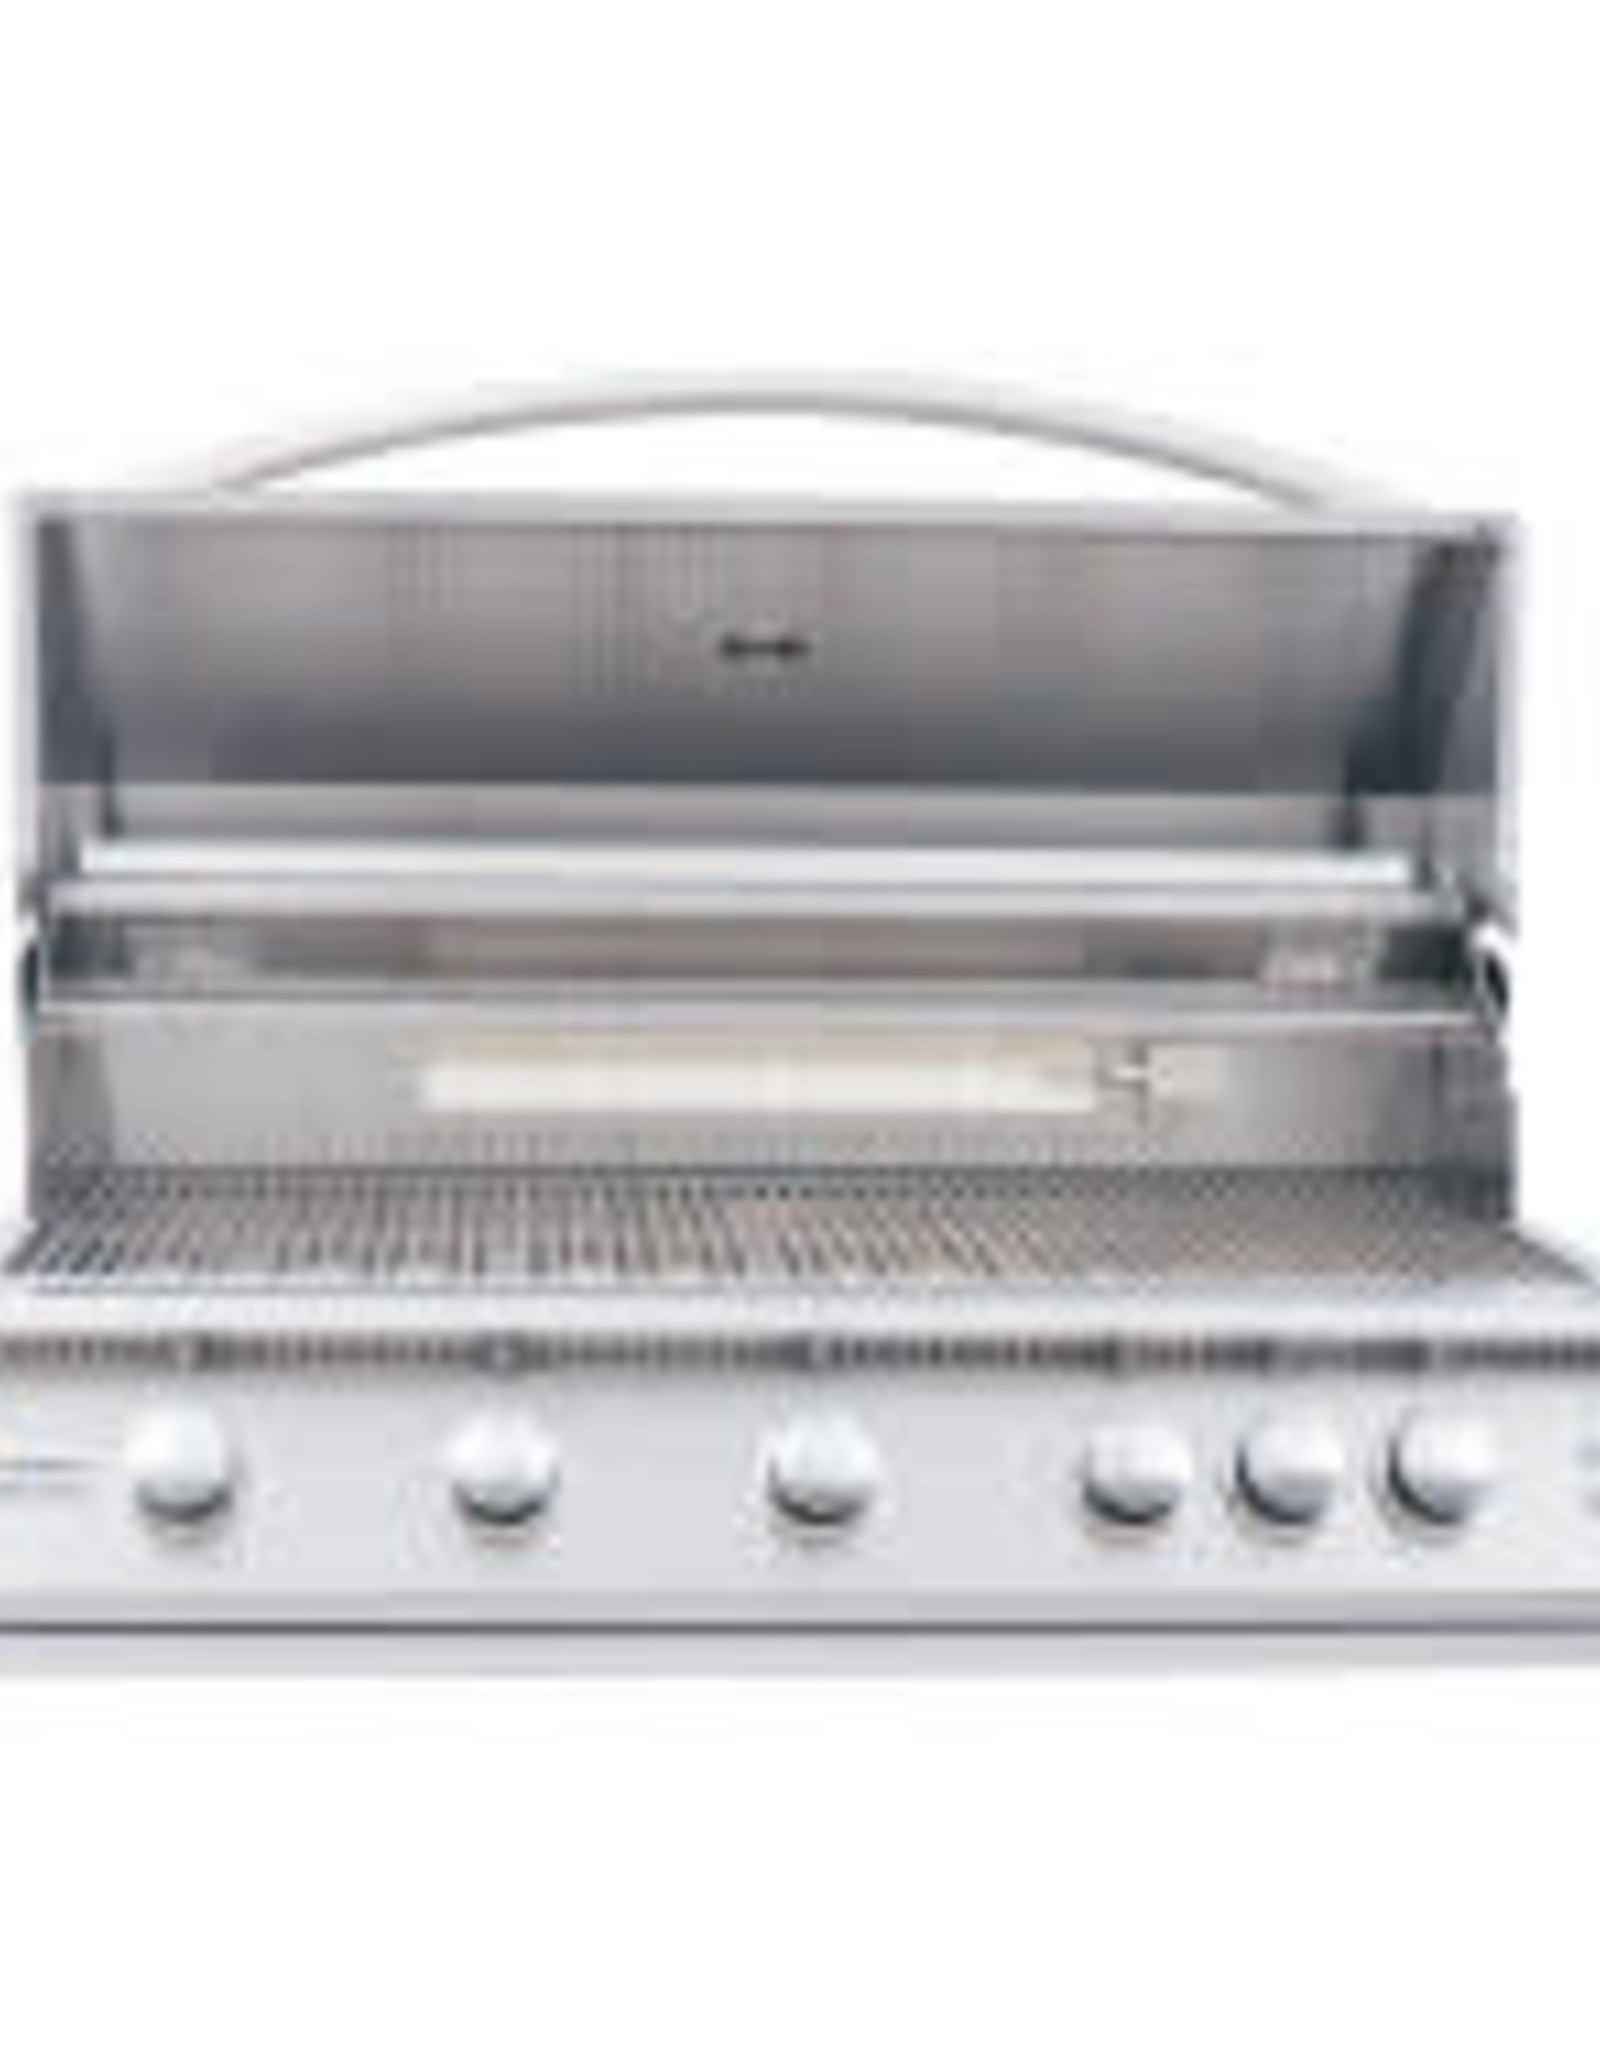 """Renaissance Cooking Systems Renaissance Cooking Systems 40"""" Premier Drop-In Grill w/ LED Lights Natural Gas  - RJC40AL"""